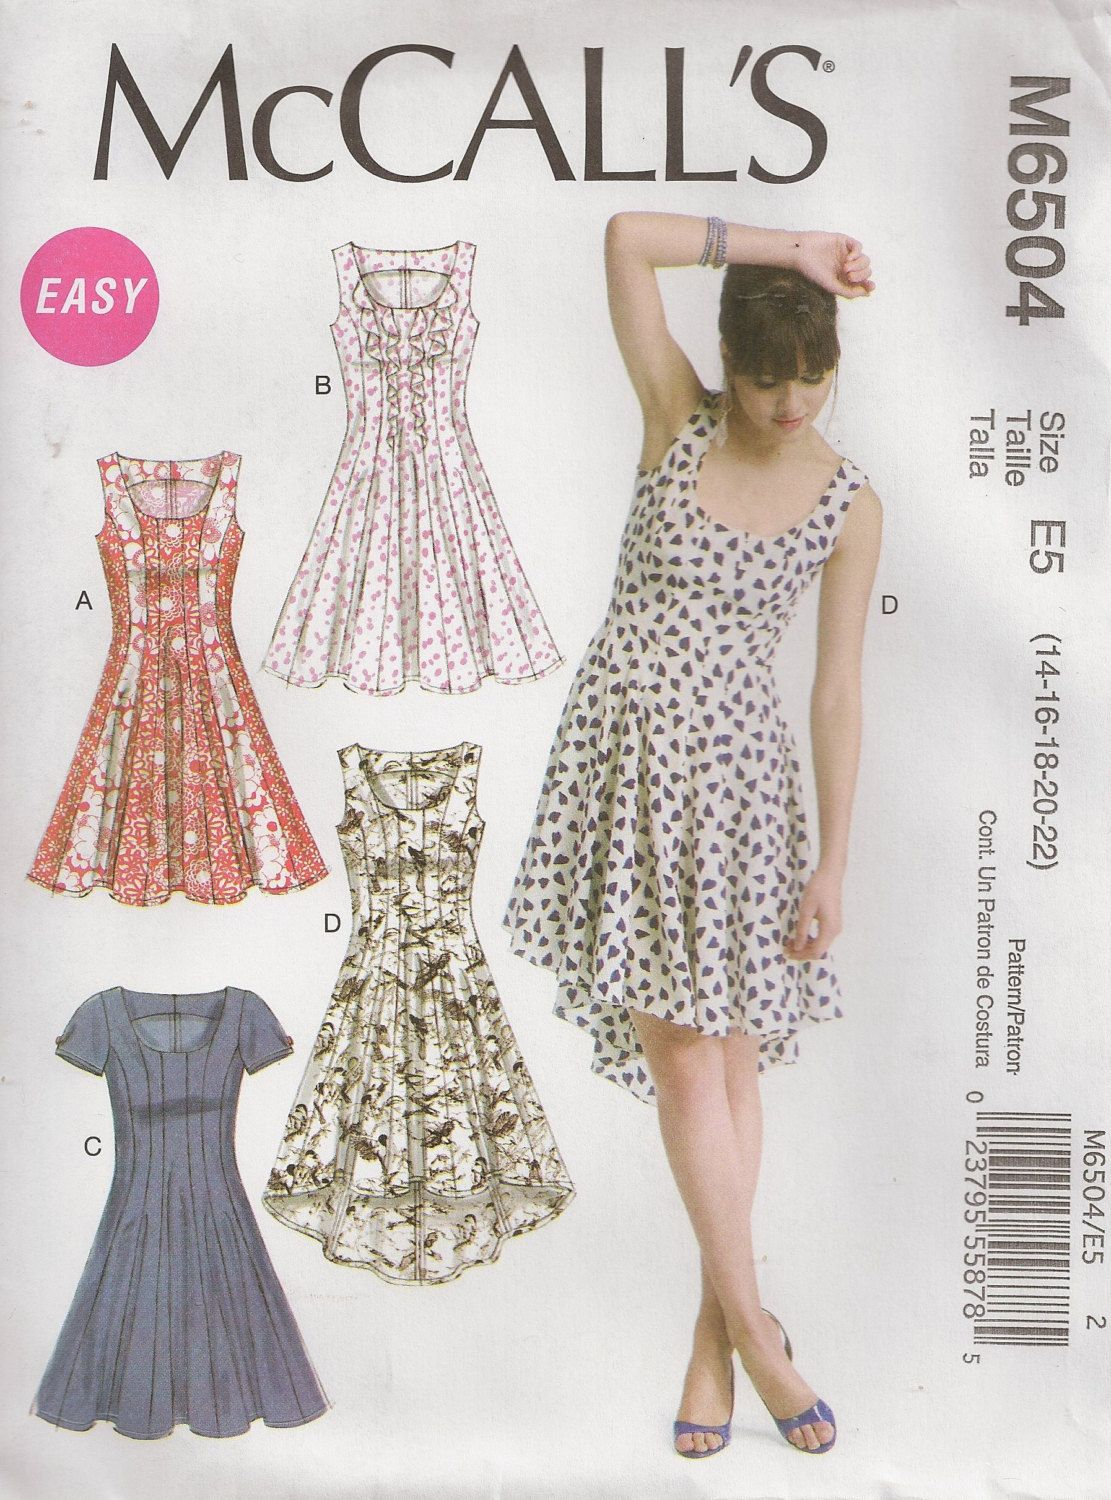 Mccall 39 S M6504 Misses 39 Dresses Size 14 16 18 20 22 Sewingpattern Summer Dress Sewing Patterns Summer Dress Patterns Dress Sewing Patterns [ 1500 x 1111 Pixel ]